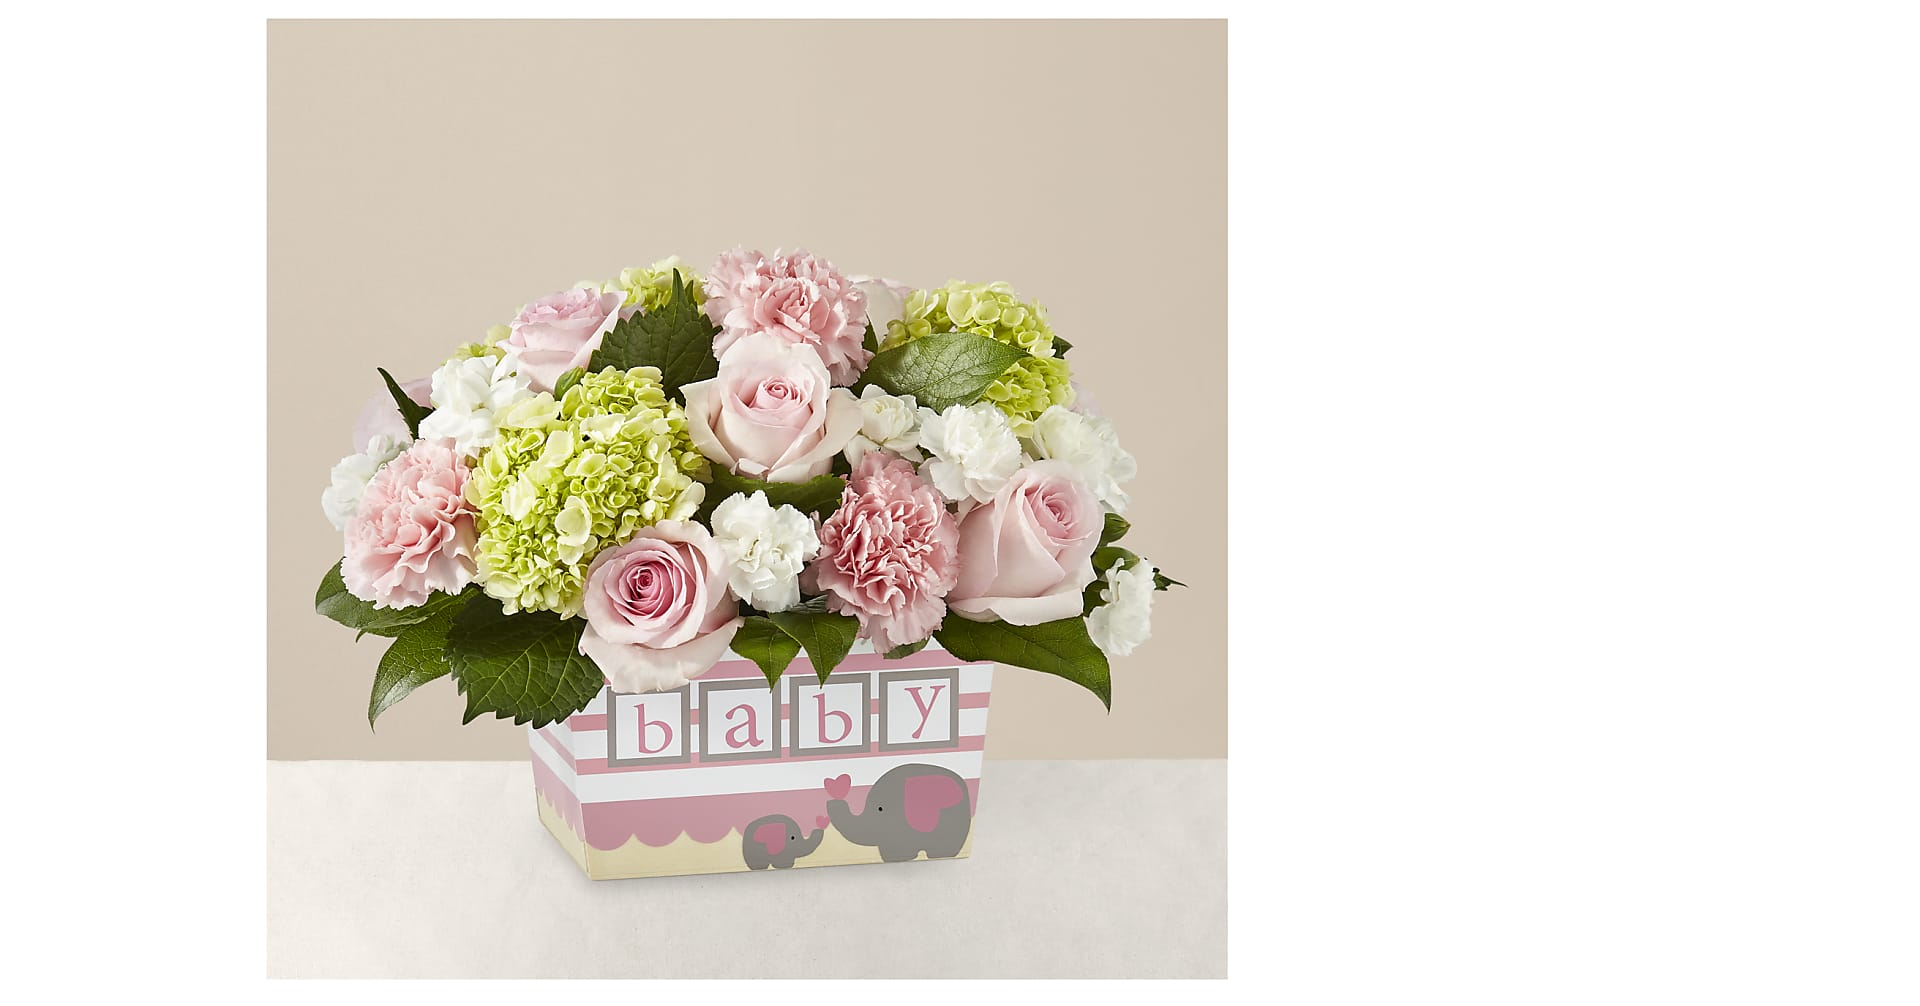 Darling Baby Girl Bouquet - Image 1 Of 3